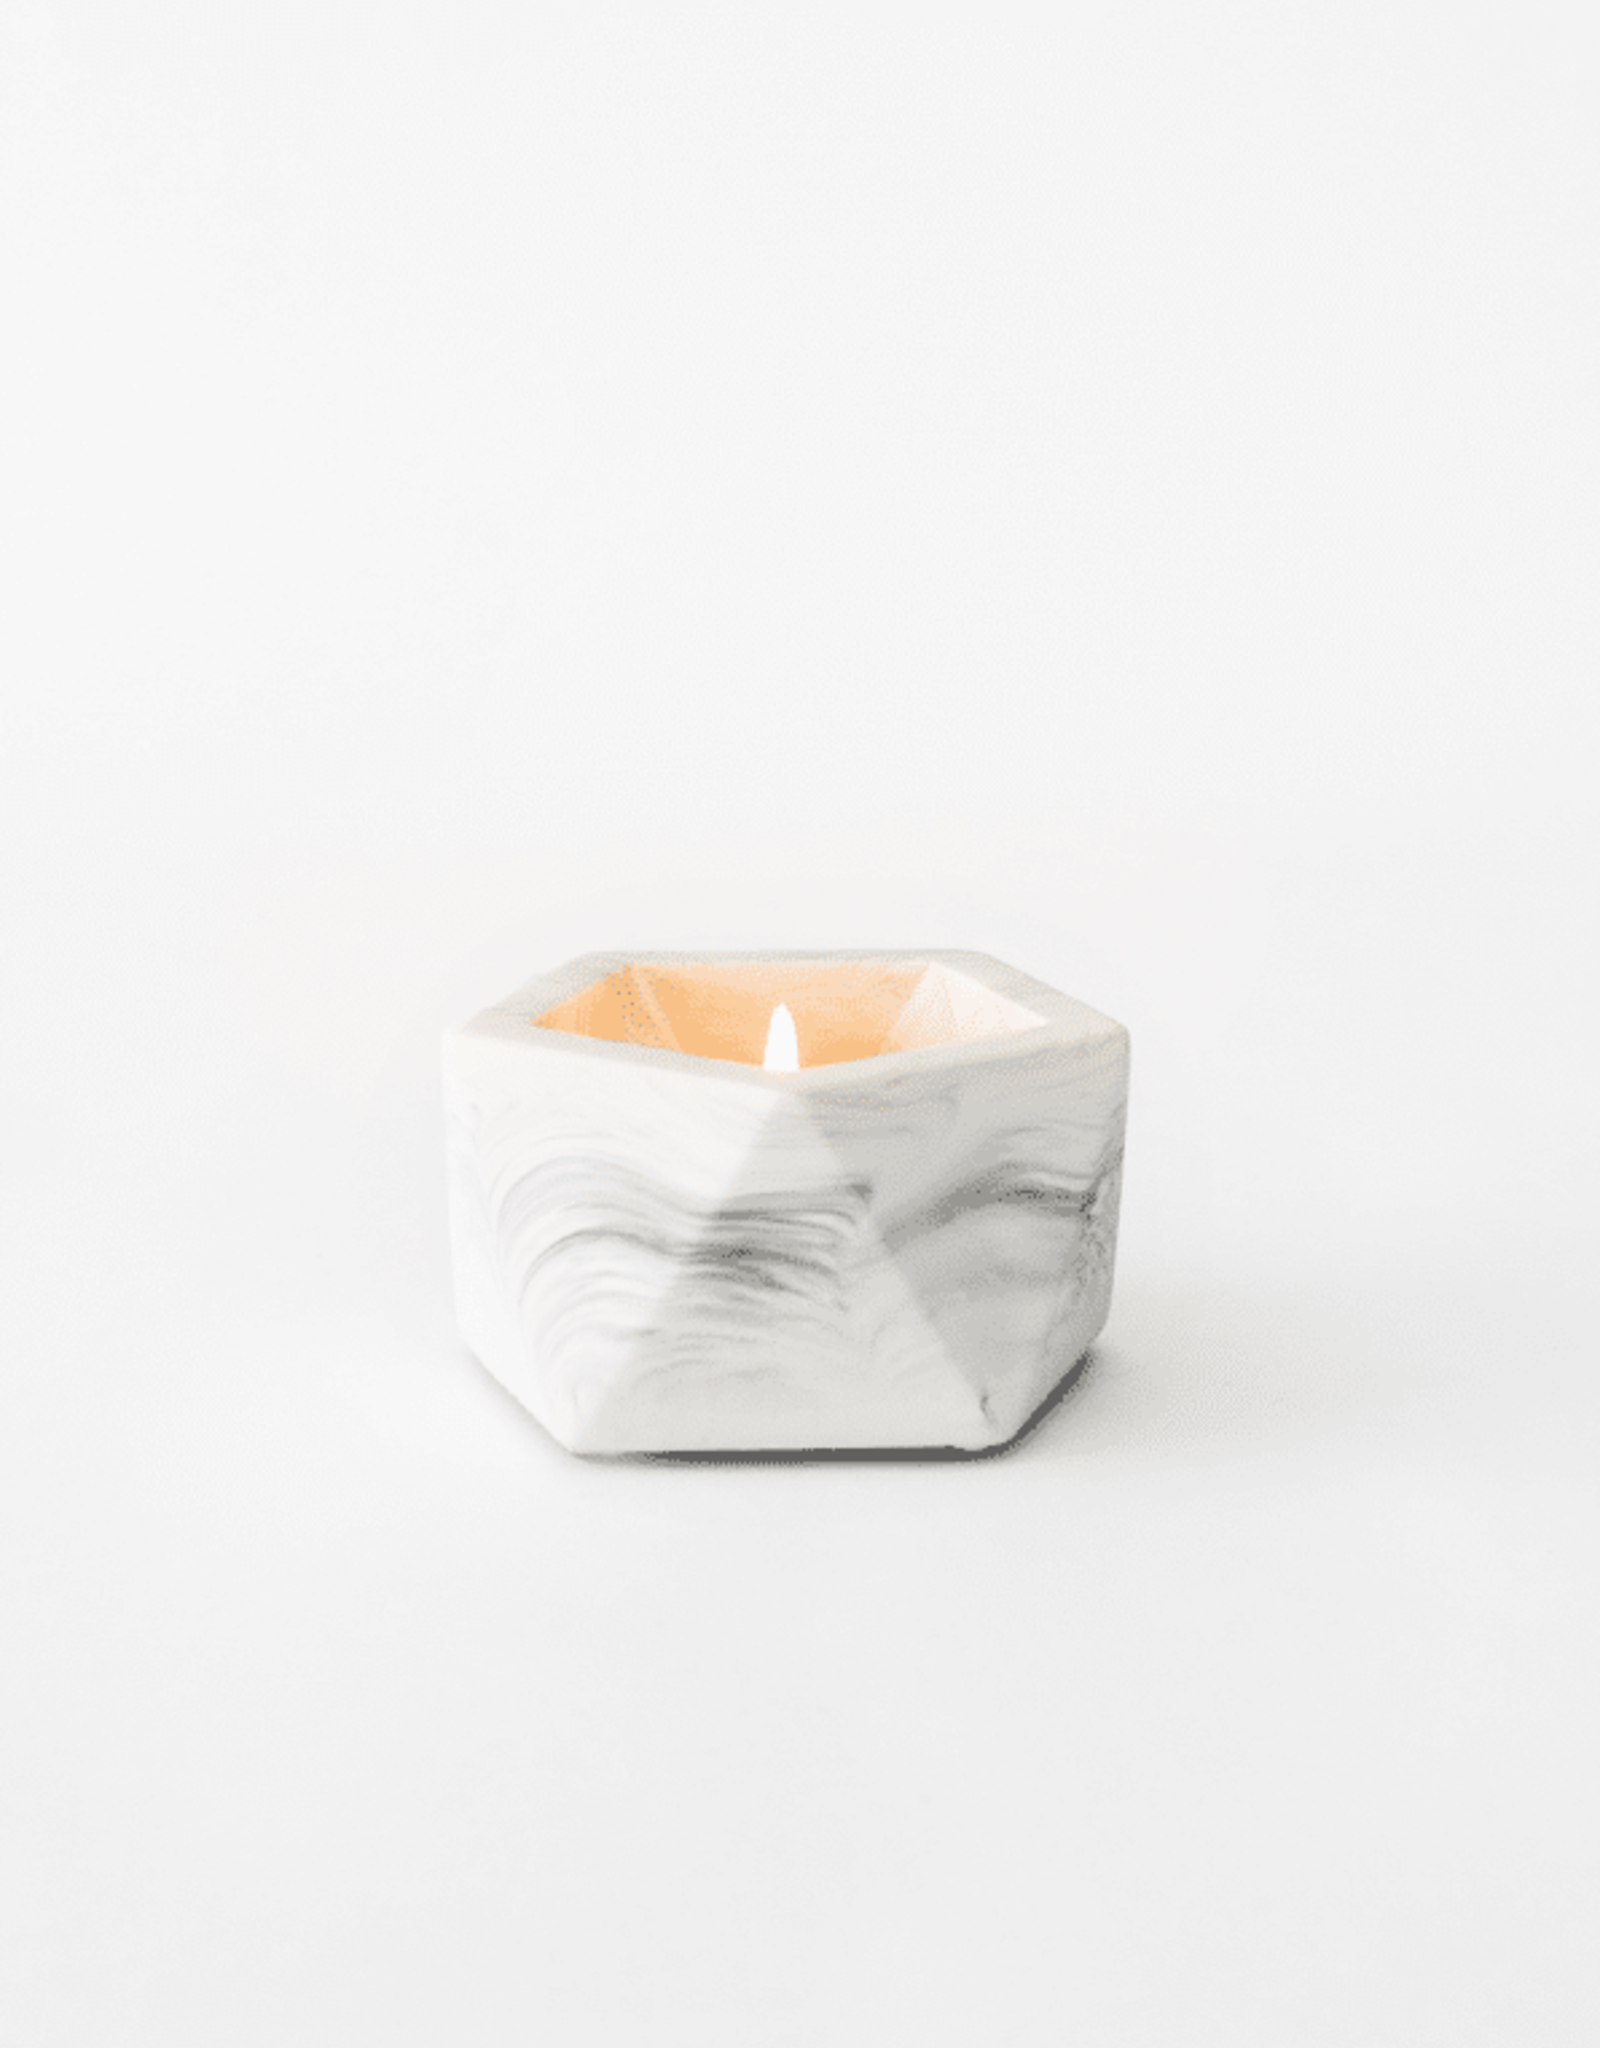 House Raccoon House Raccoon - Vand Tealight holder - White marble